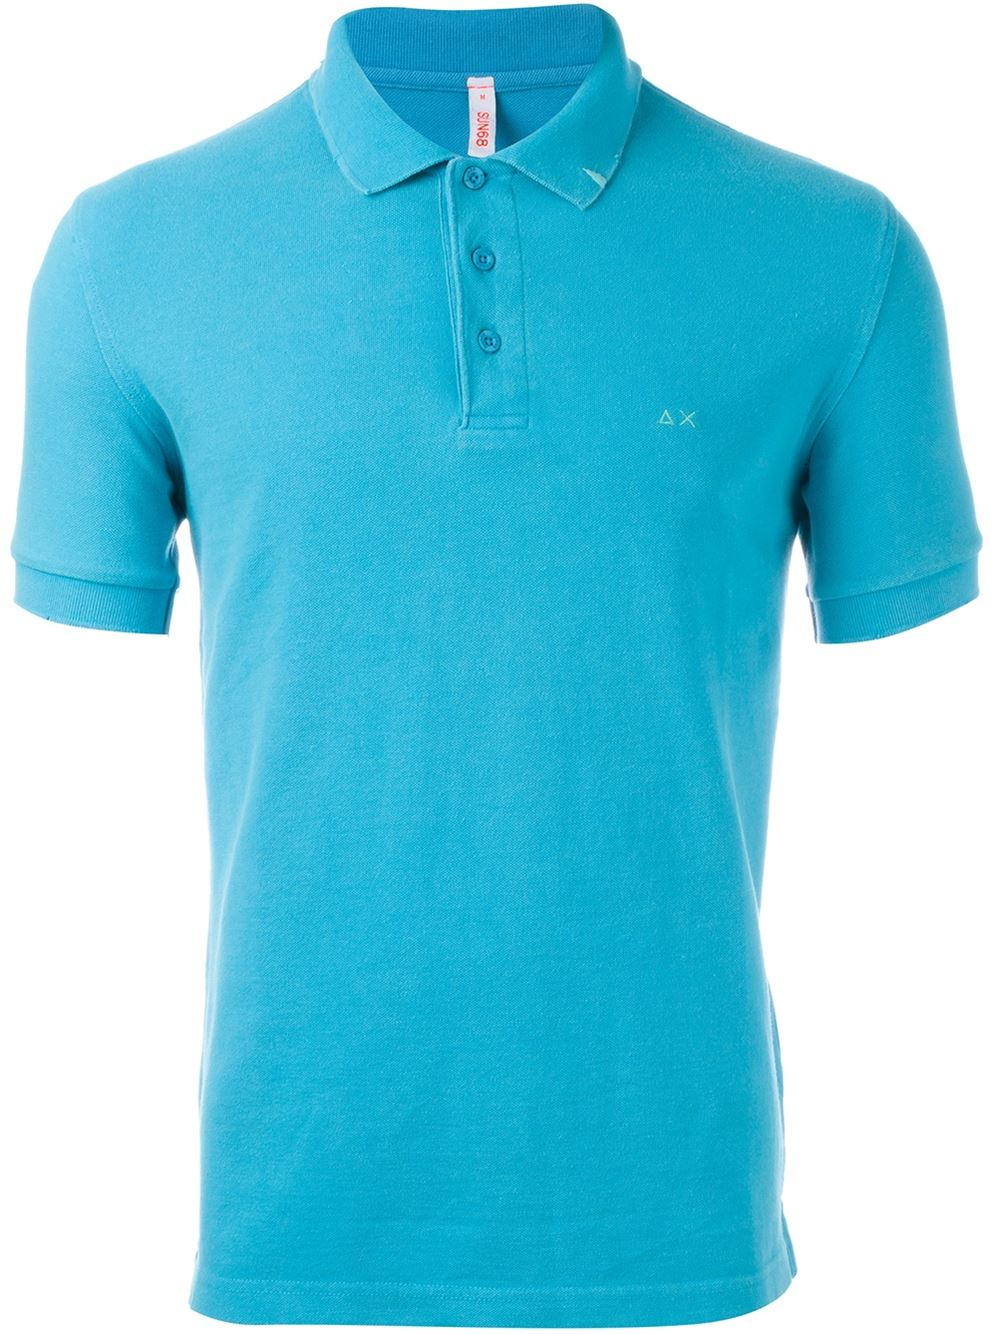 Lyst sun 68 embroidered logo polo shirt in blue for men for Polo shirts with logos